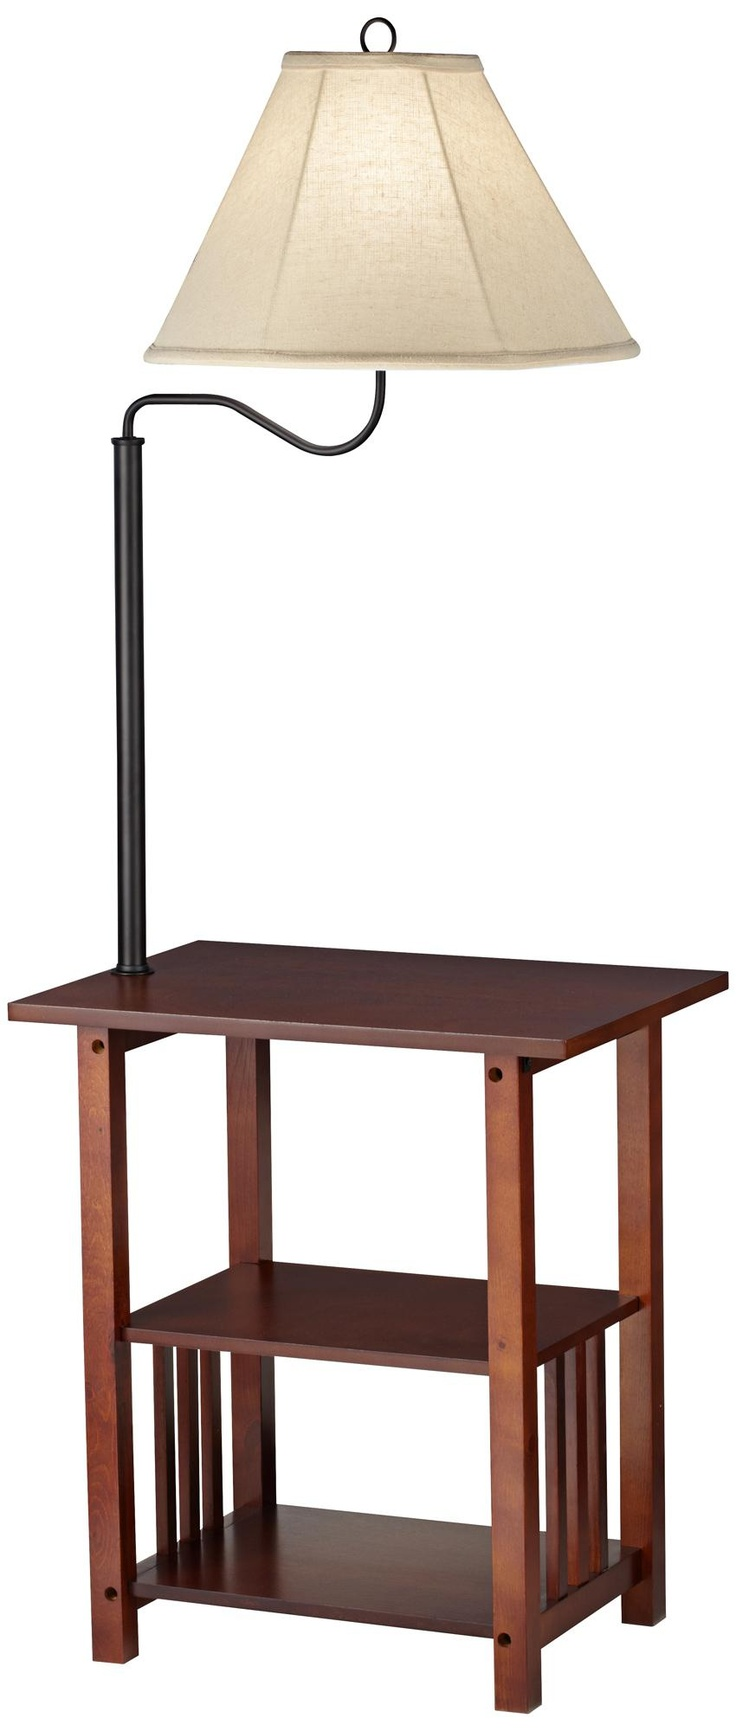 Madra Mission Style Mahogany End Table Floor Lamp | LampsPlus.com